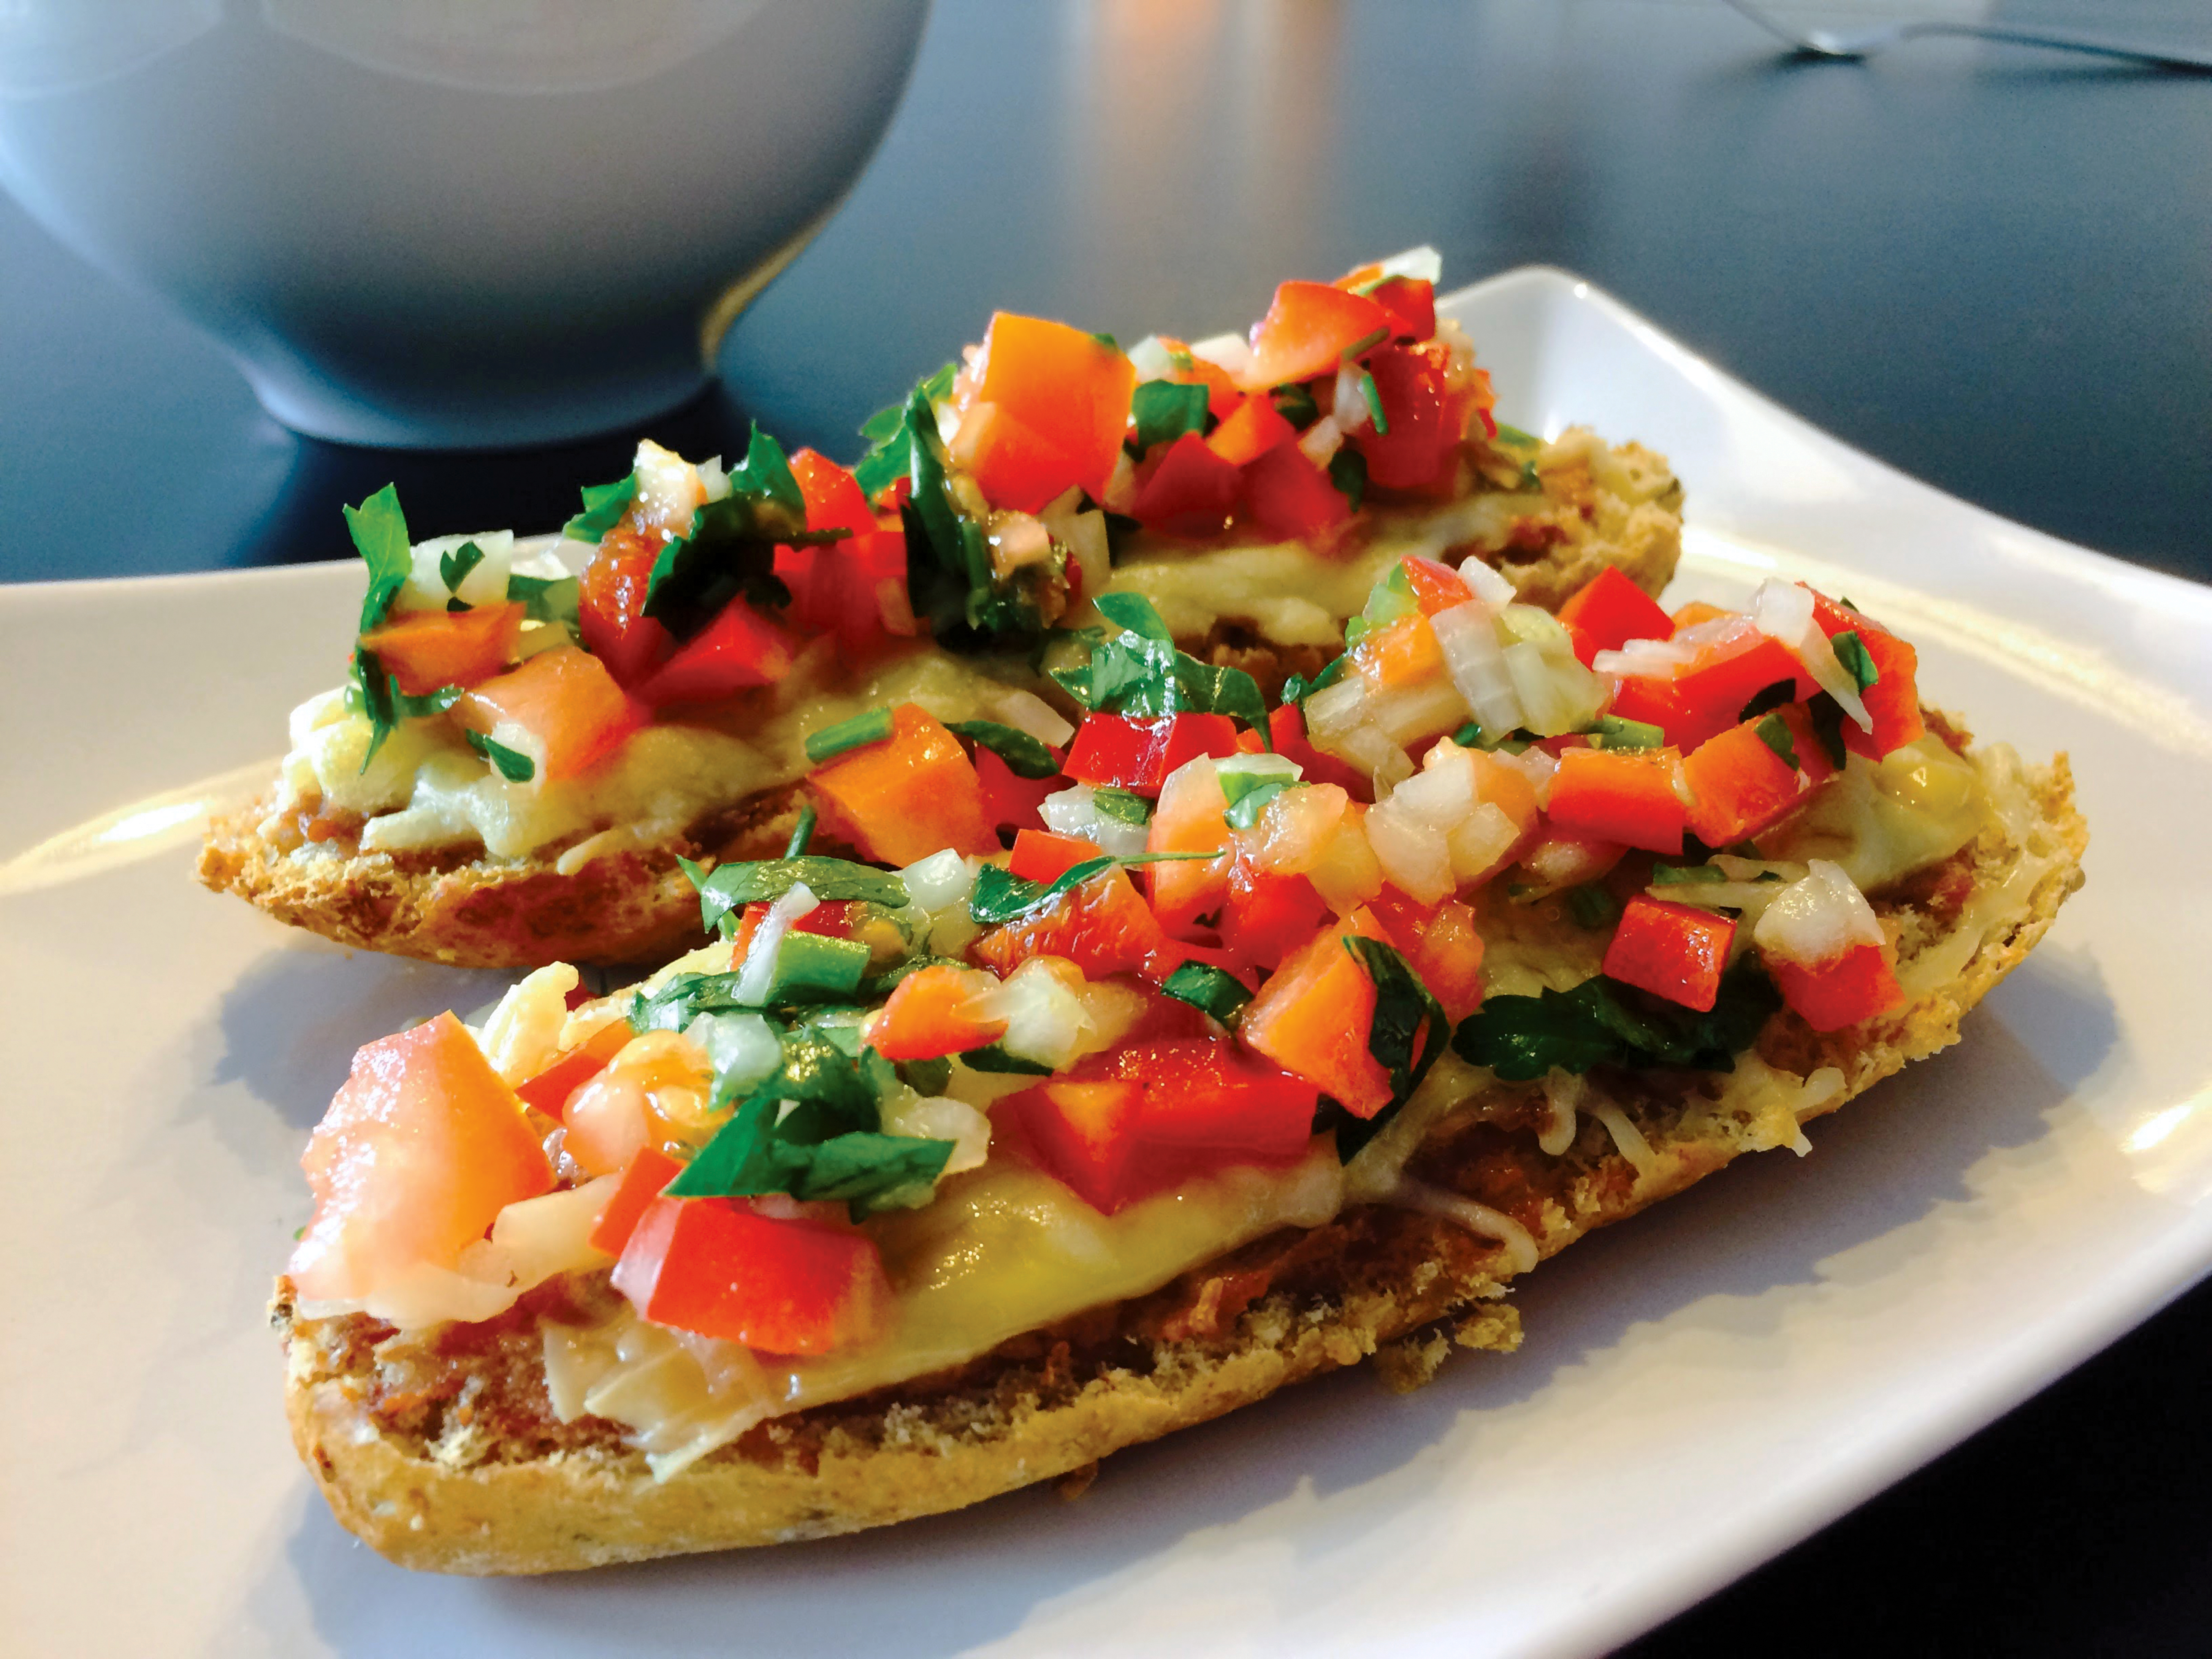 A Mollete is a traditional sandwich of Mexico that is typically served open-faced. It's a comforting dish that can be compared to the American grilled cheese.